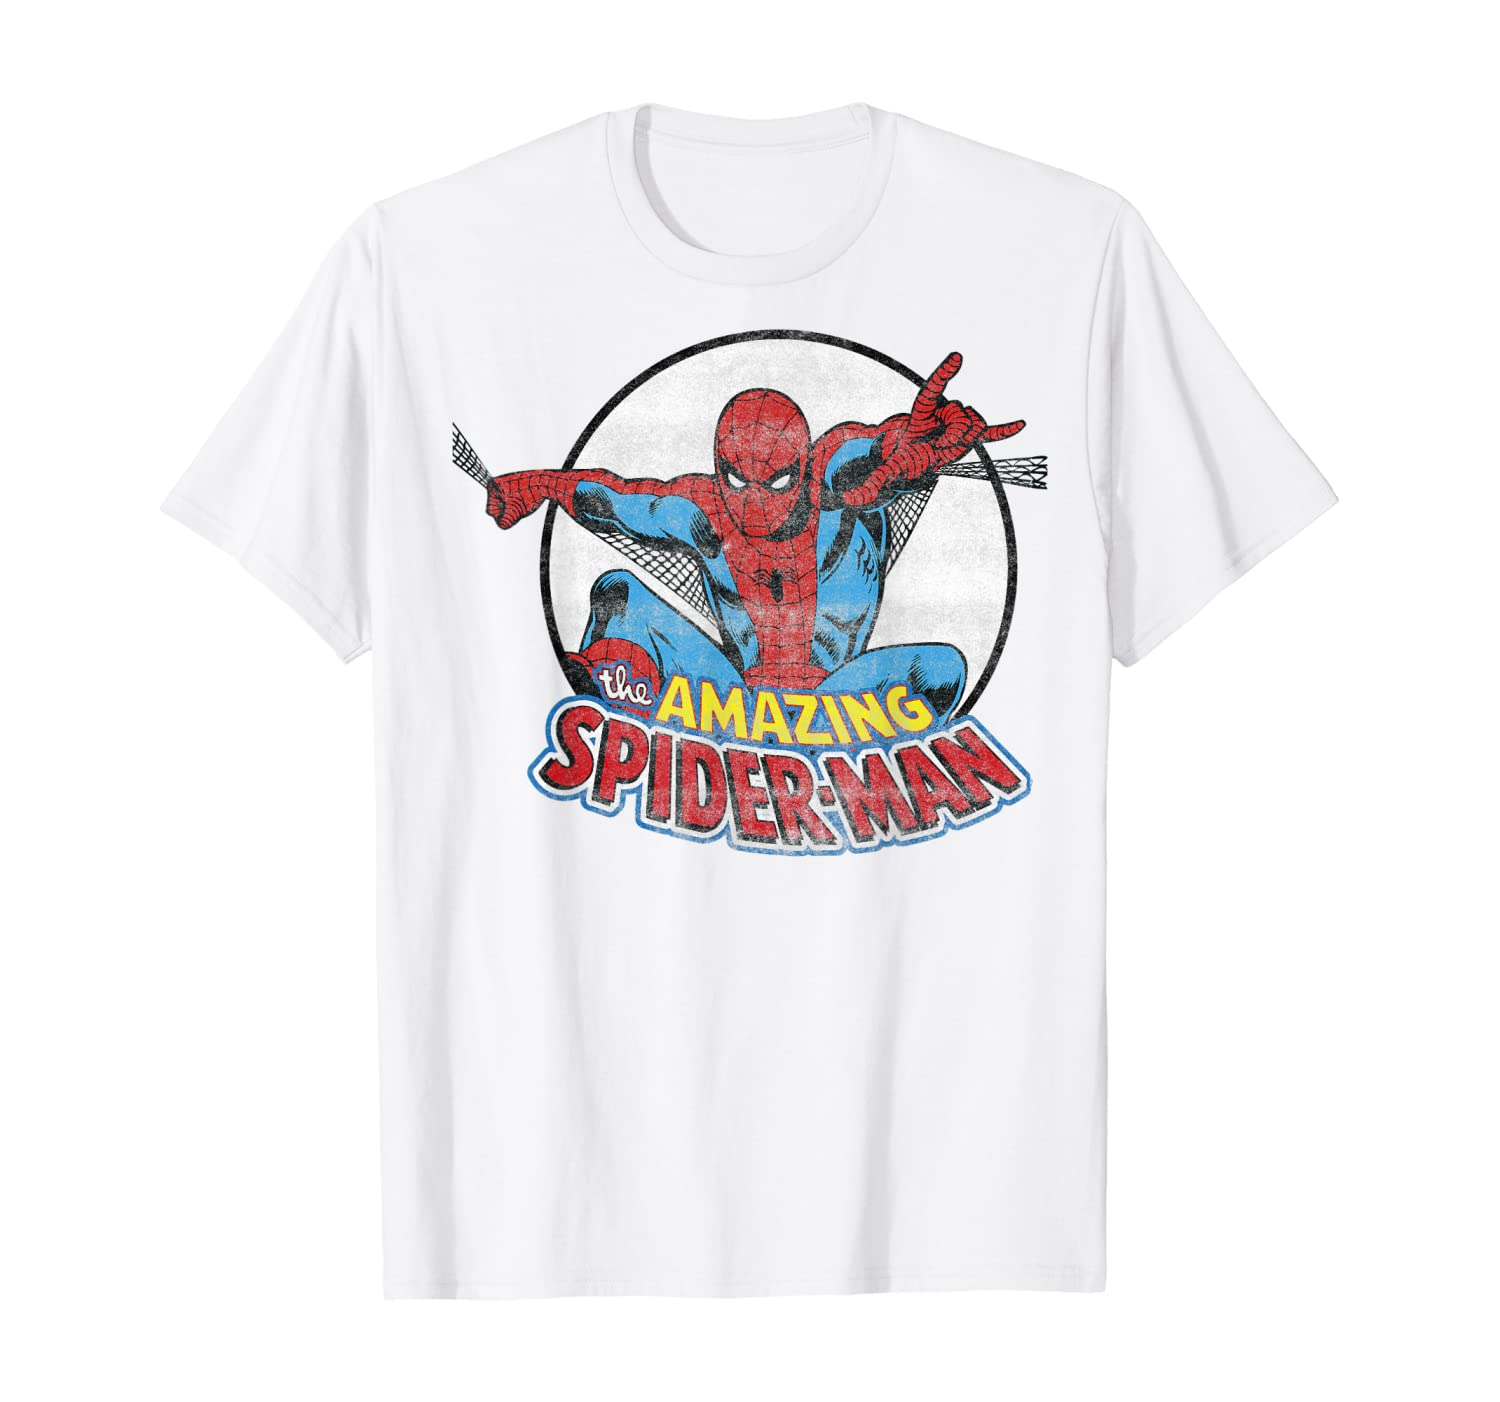 Marvel Amazing Spider-Man Retro Vintage Graphic T-Shirt T-Shirt